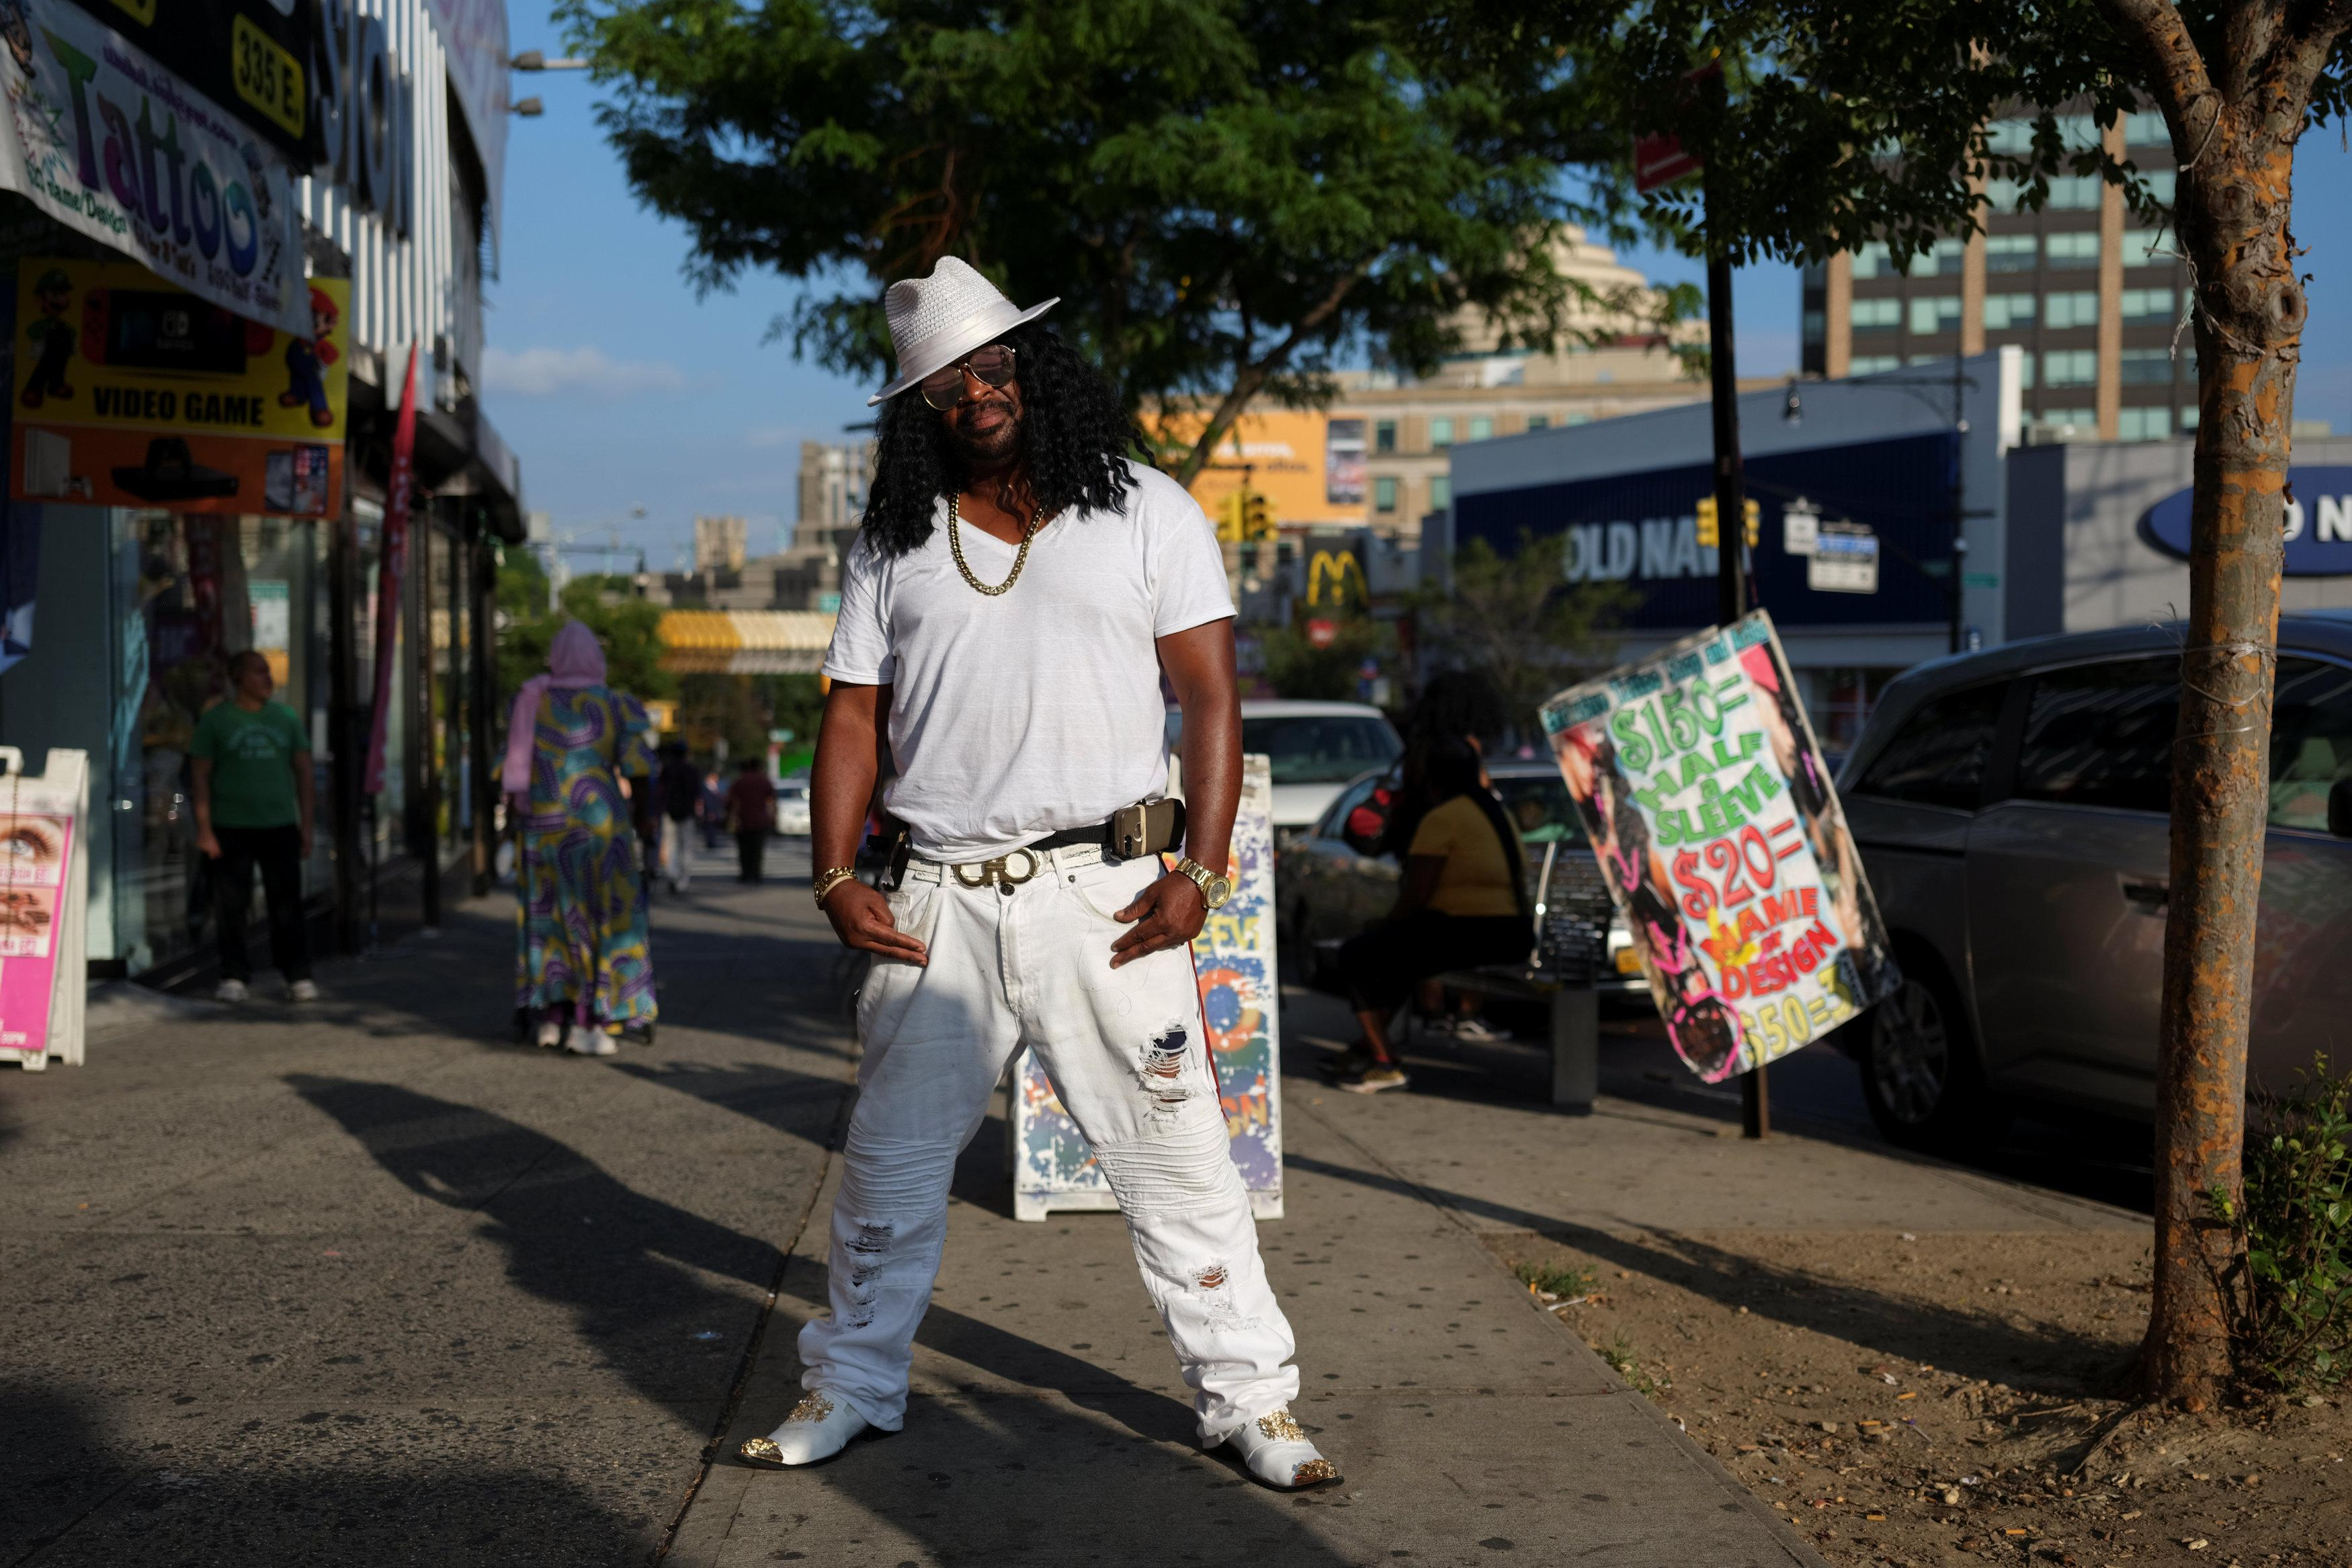 Robert Norman, 37, a street vendor and musician, poses for a picture in the Bronx borough of New York, U.S., September 2, 2018. Norman said he's a very unique person and emphasised the importance of creativity in his style.   Caitlin Ochs